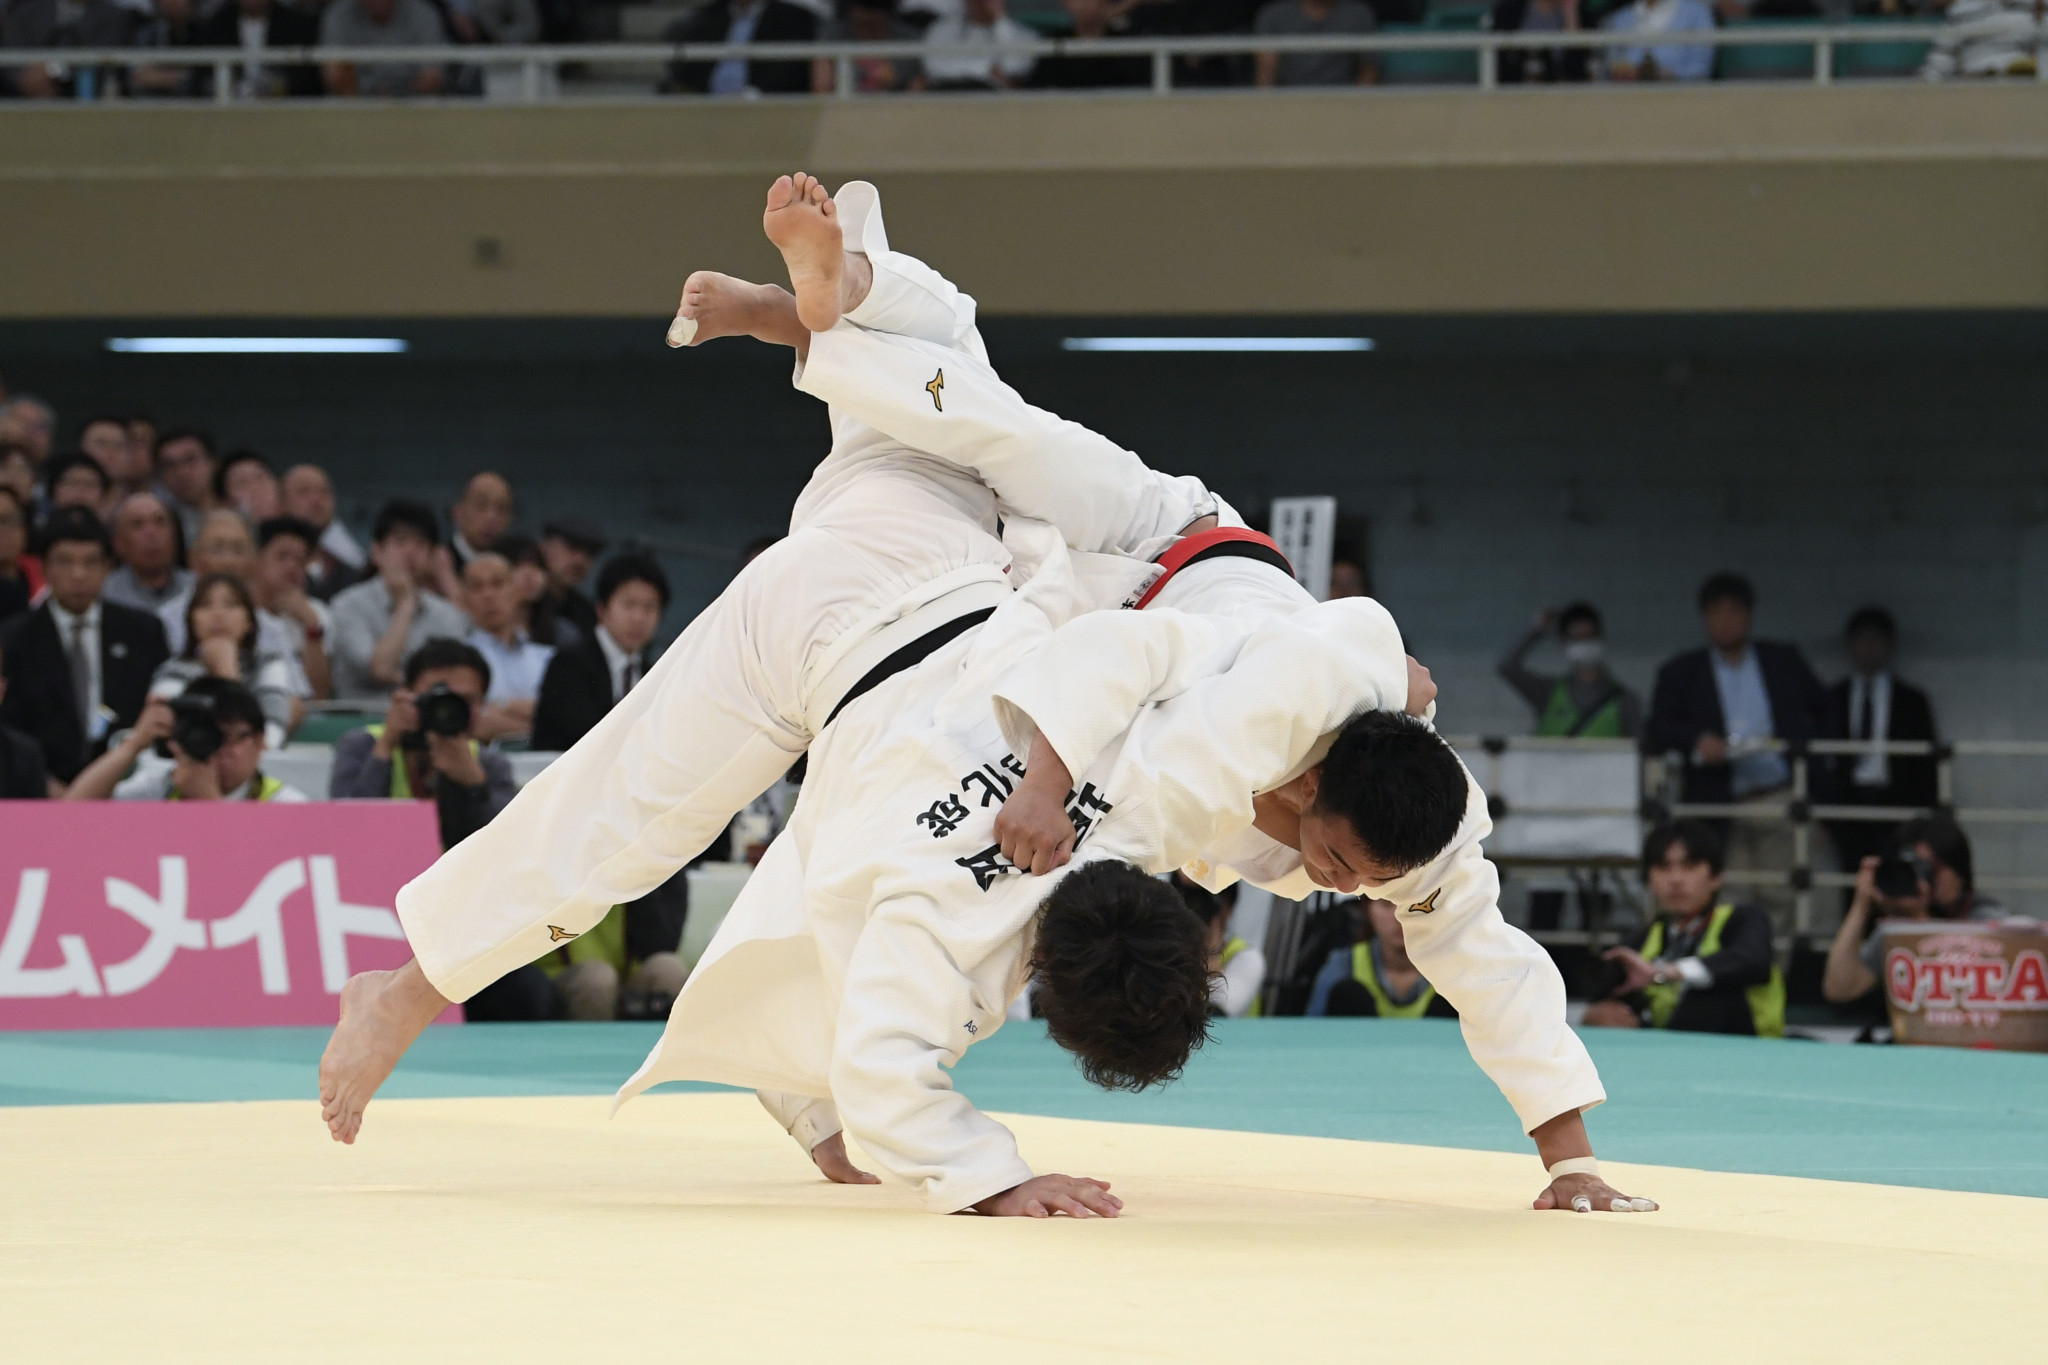 The IJF state the website was launched prior to judo's homecoming at the Tokyo 2020 Olympic Games ©Getty Images